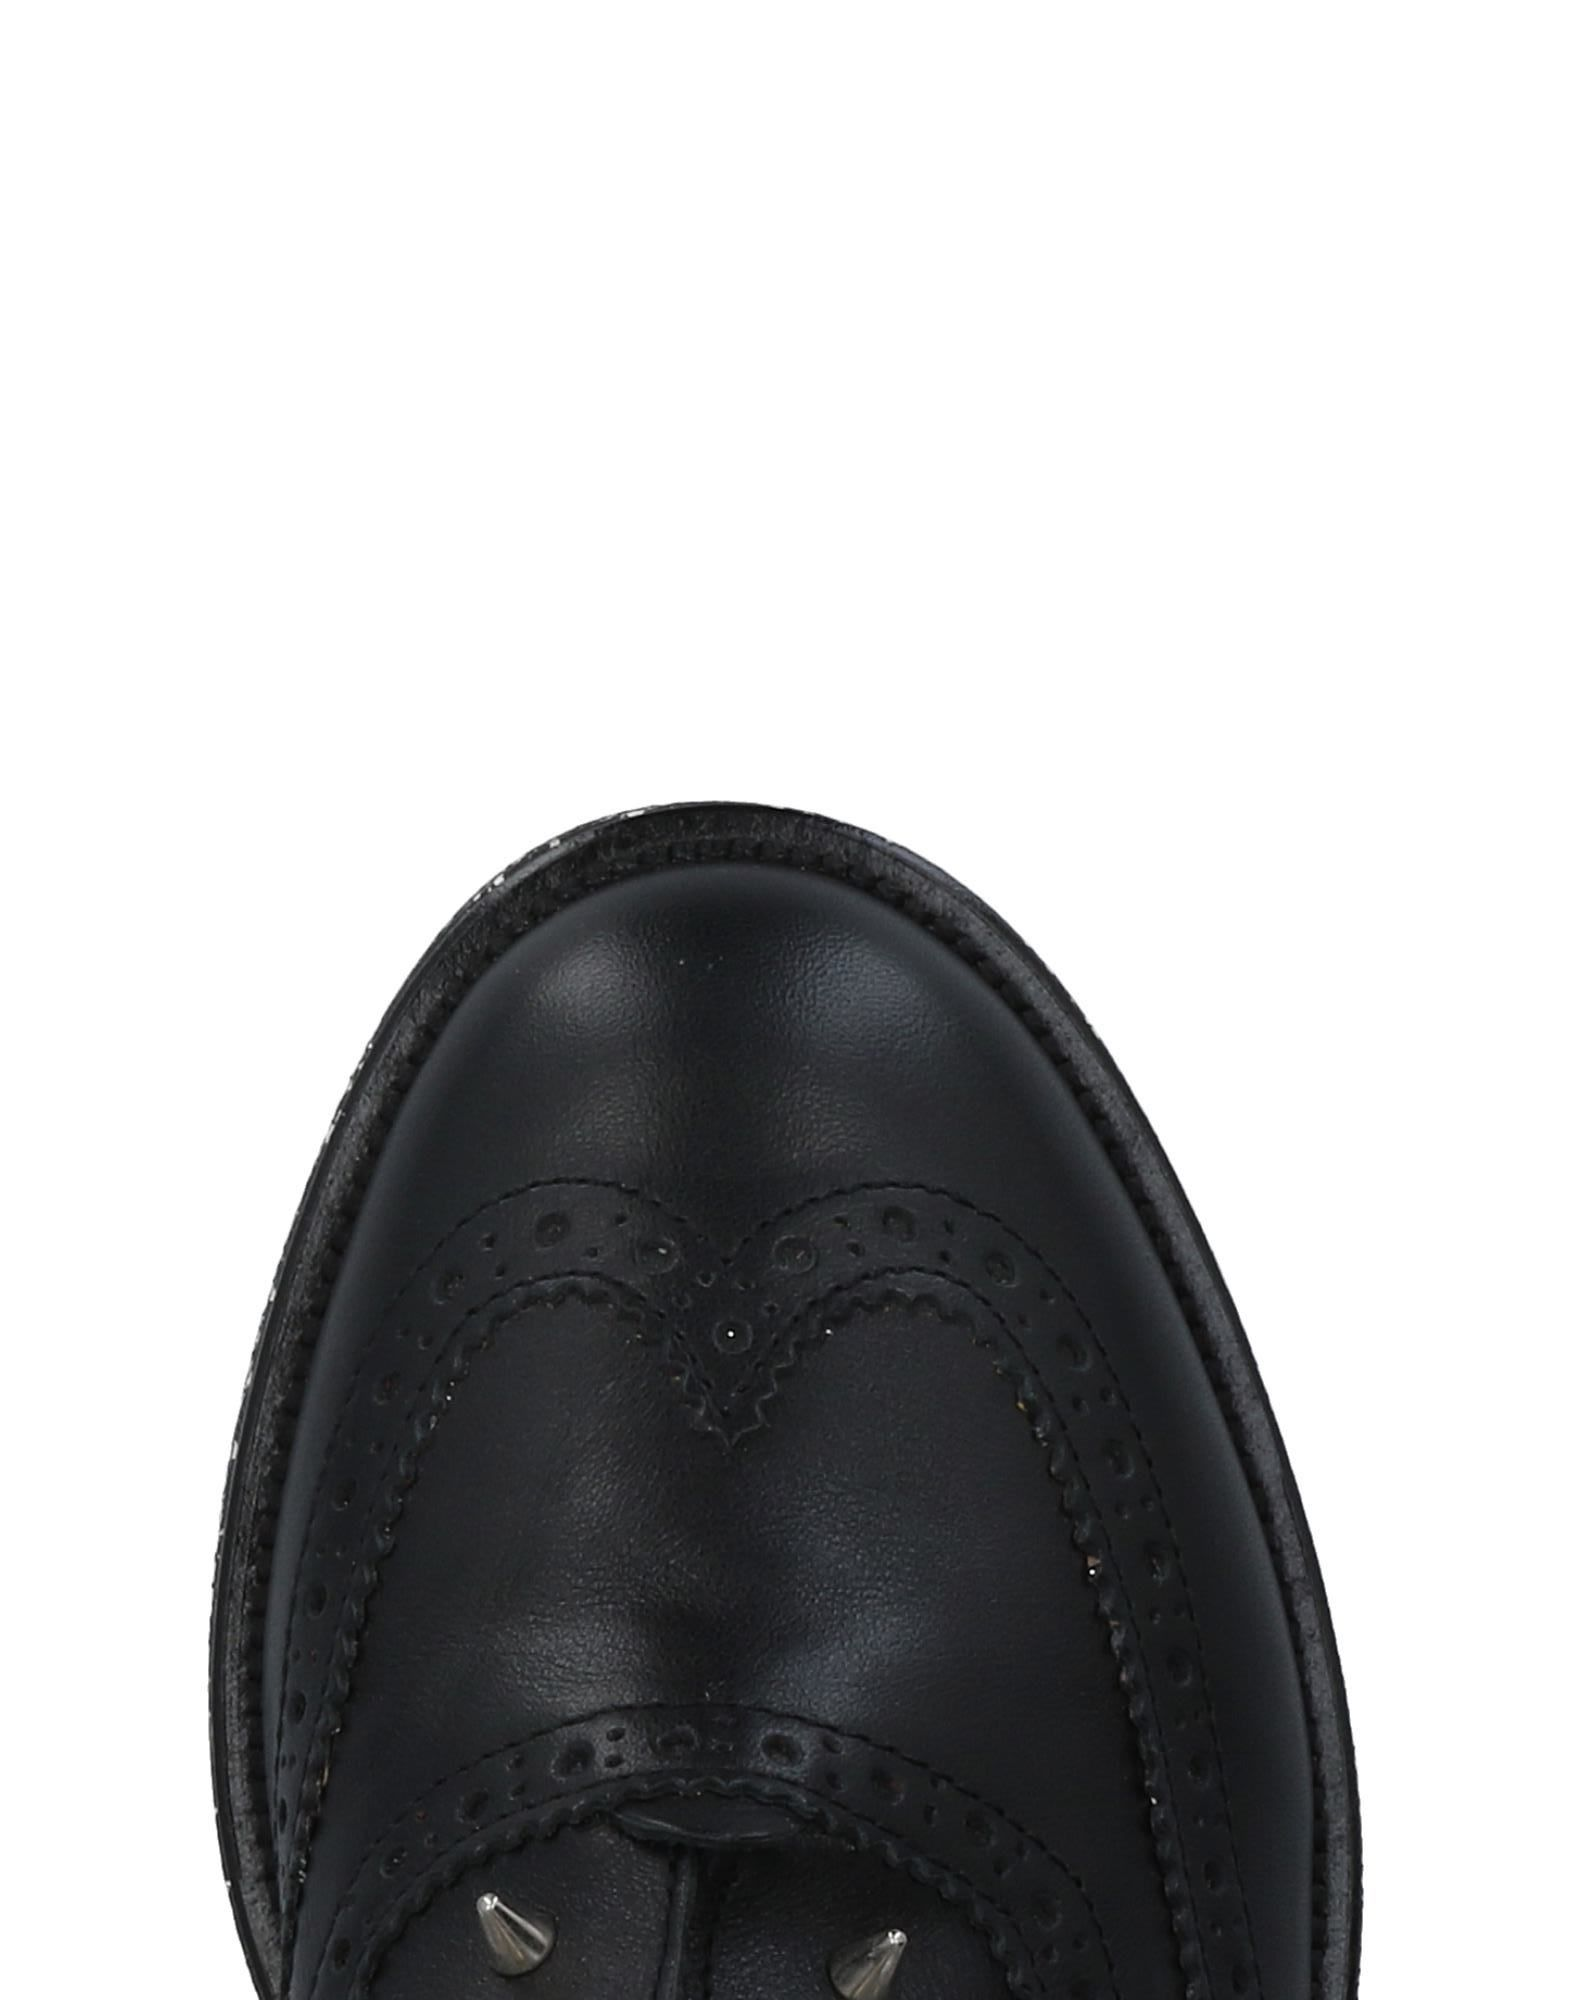 L'f Shoes Loafers - Men L'f Shoes Loafers Kingdom online on  United Kingdom Loafers - 11481489TJ 919f41